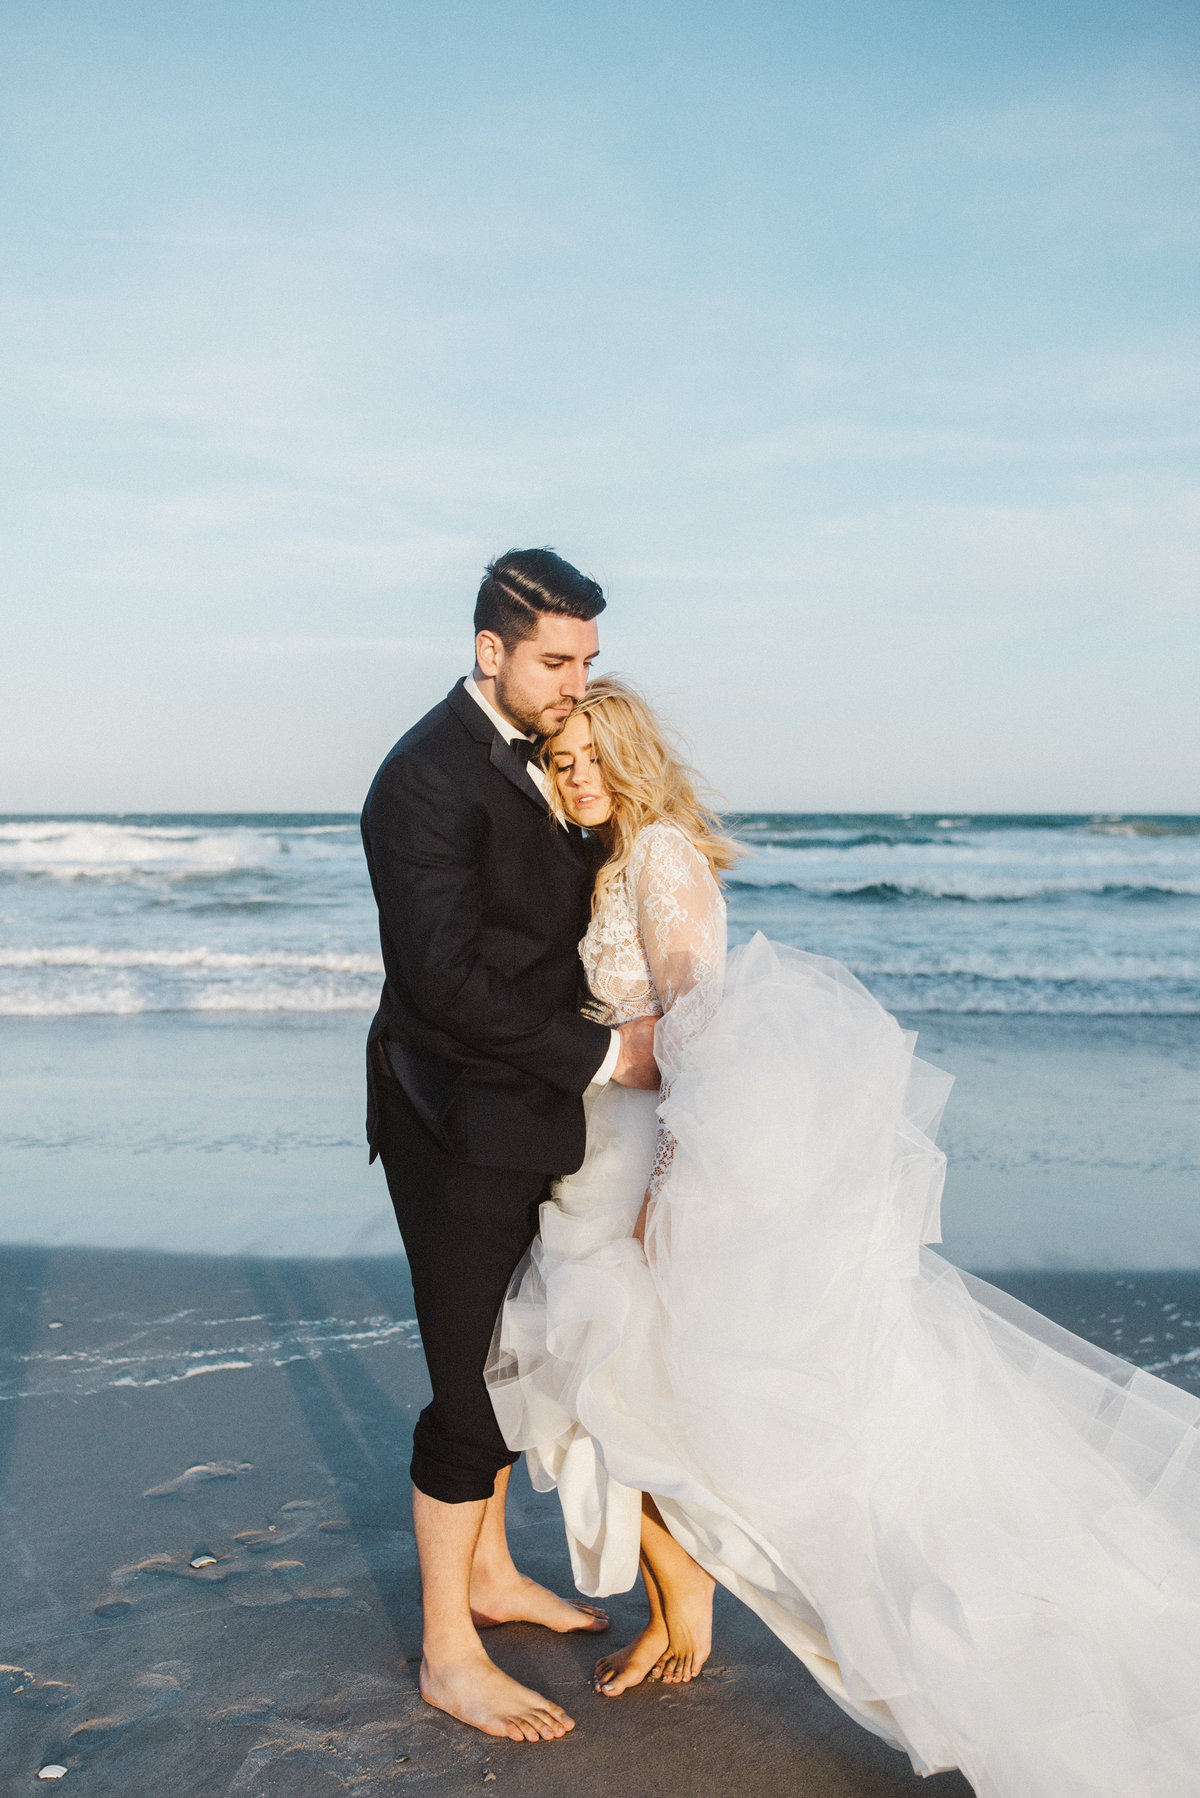 wilmington_beach_elopement_2016-23